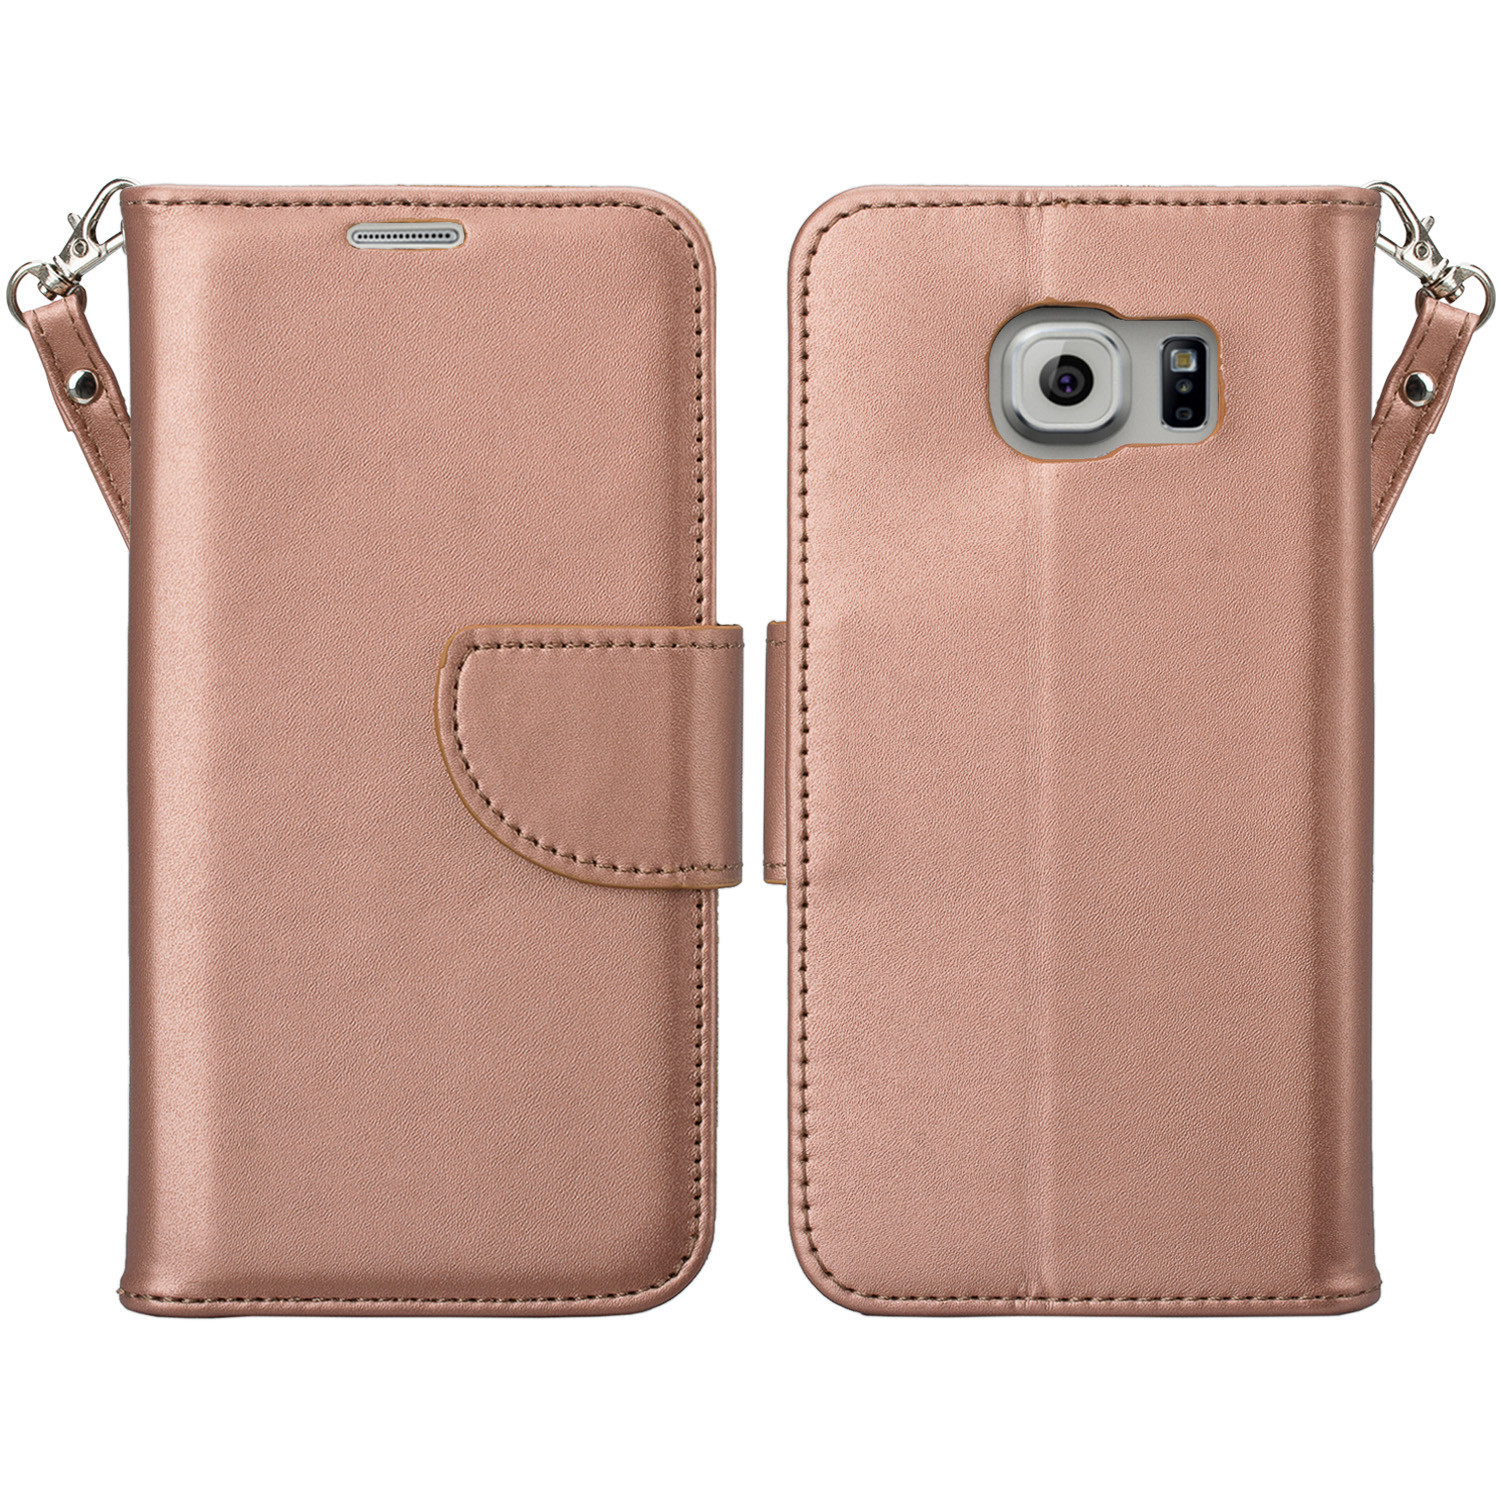 Samsung Galaxy S7 Wallet Case, Wrist Strap Magnetic Flip Folio [Kickstand Feature] Pu Leather Wallet Case with ID & Credit Card Slot For Galaxy S7 - Rose Gold